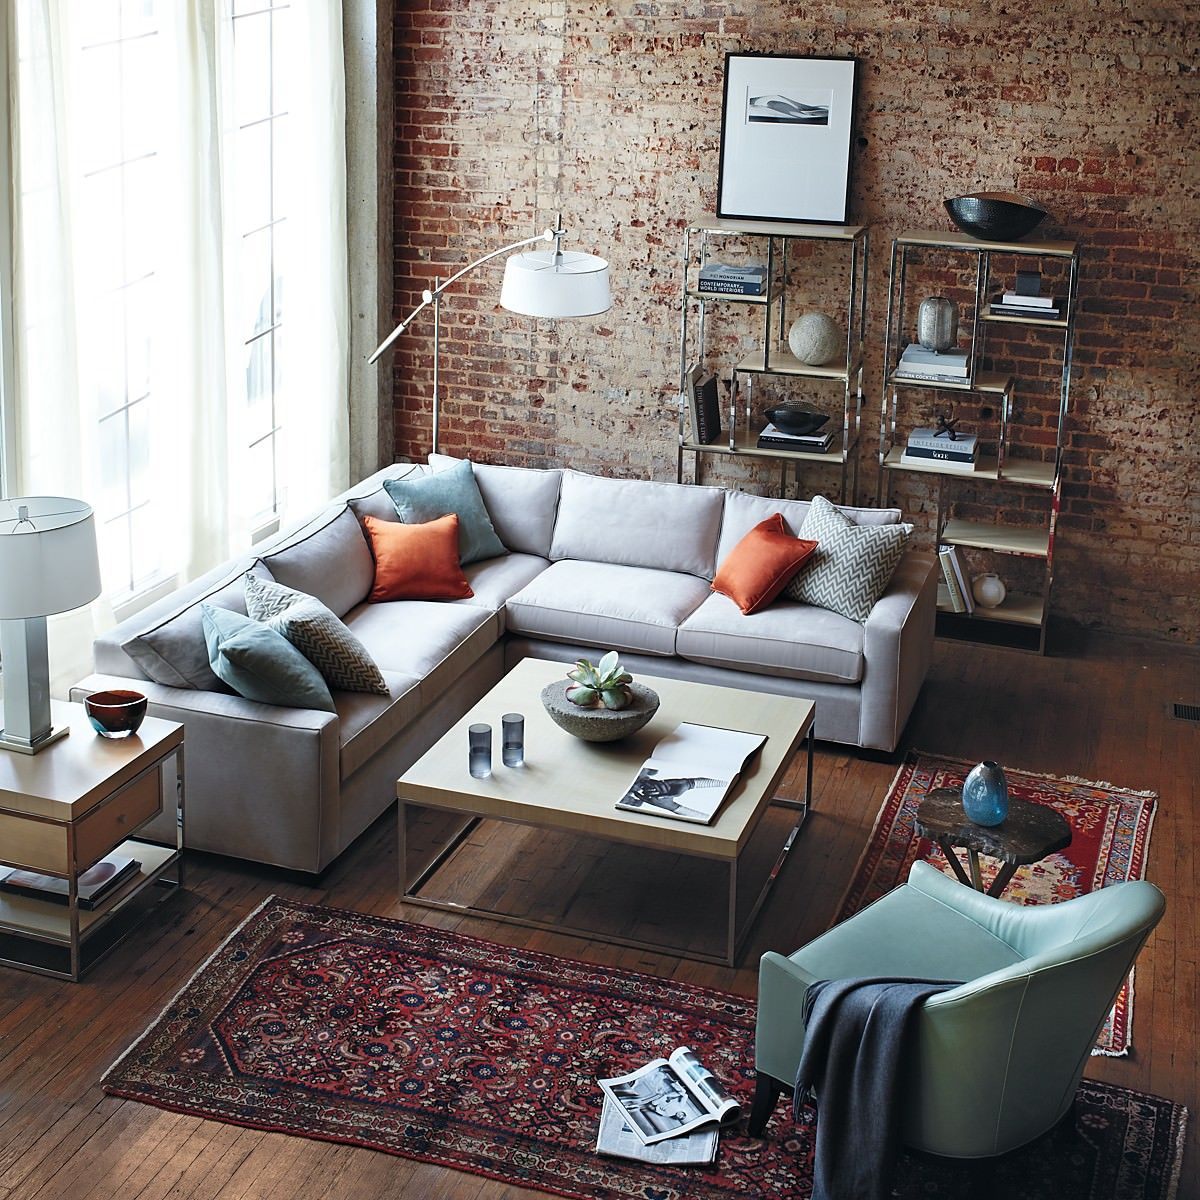 exciting brick wall inside living room | An Enchanting Living Room Design With Red Brick Wall ...